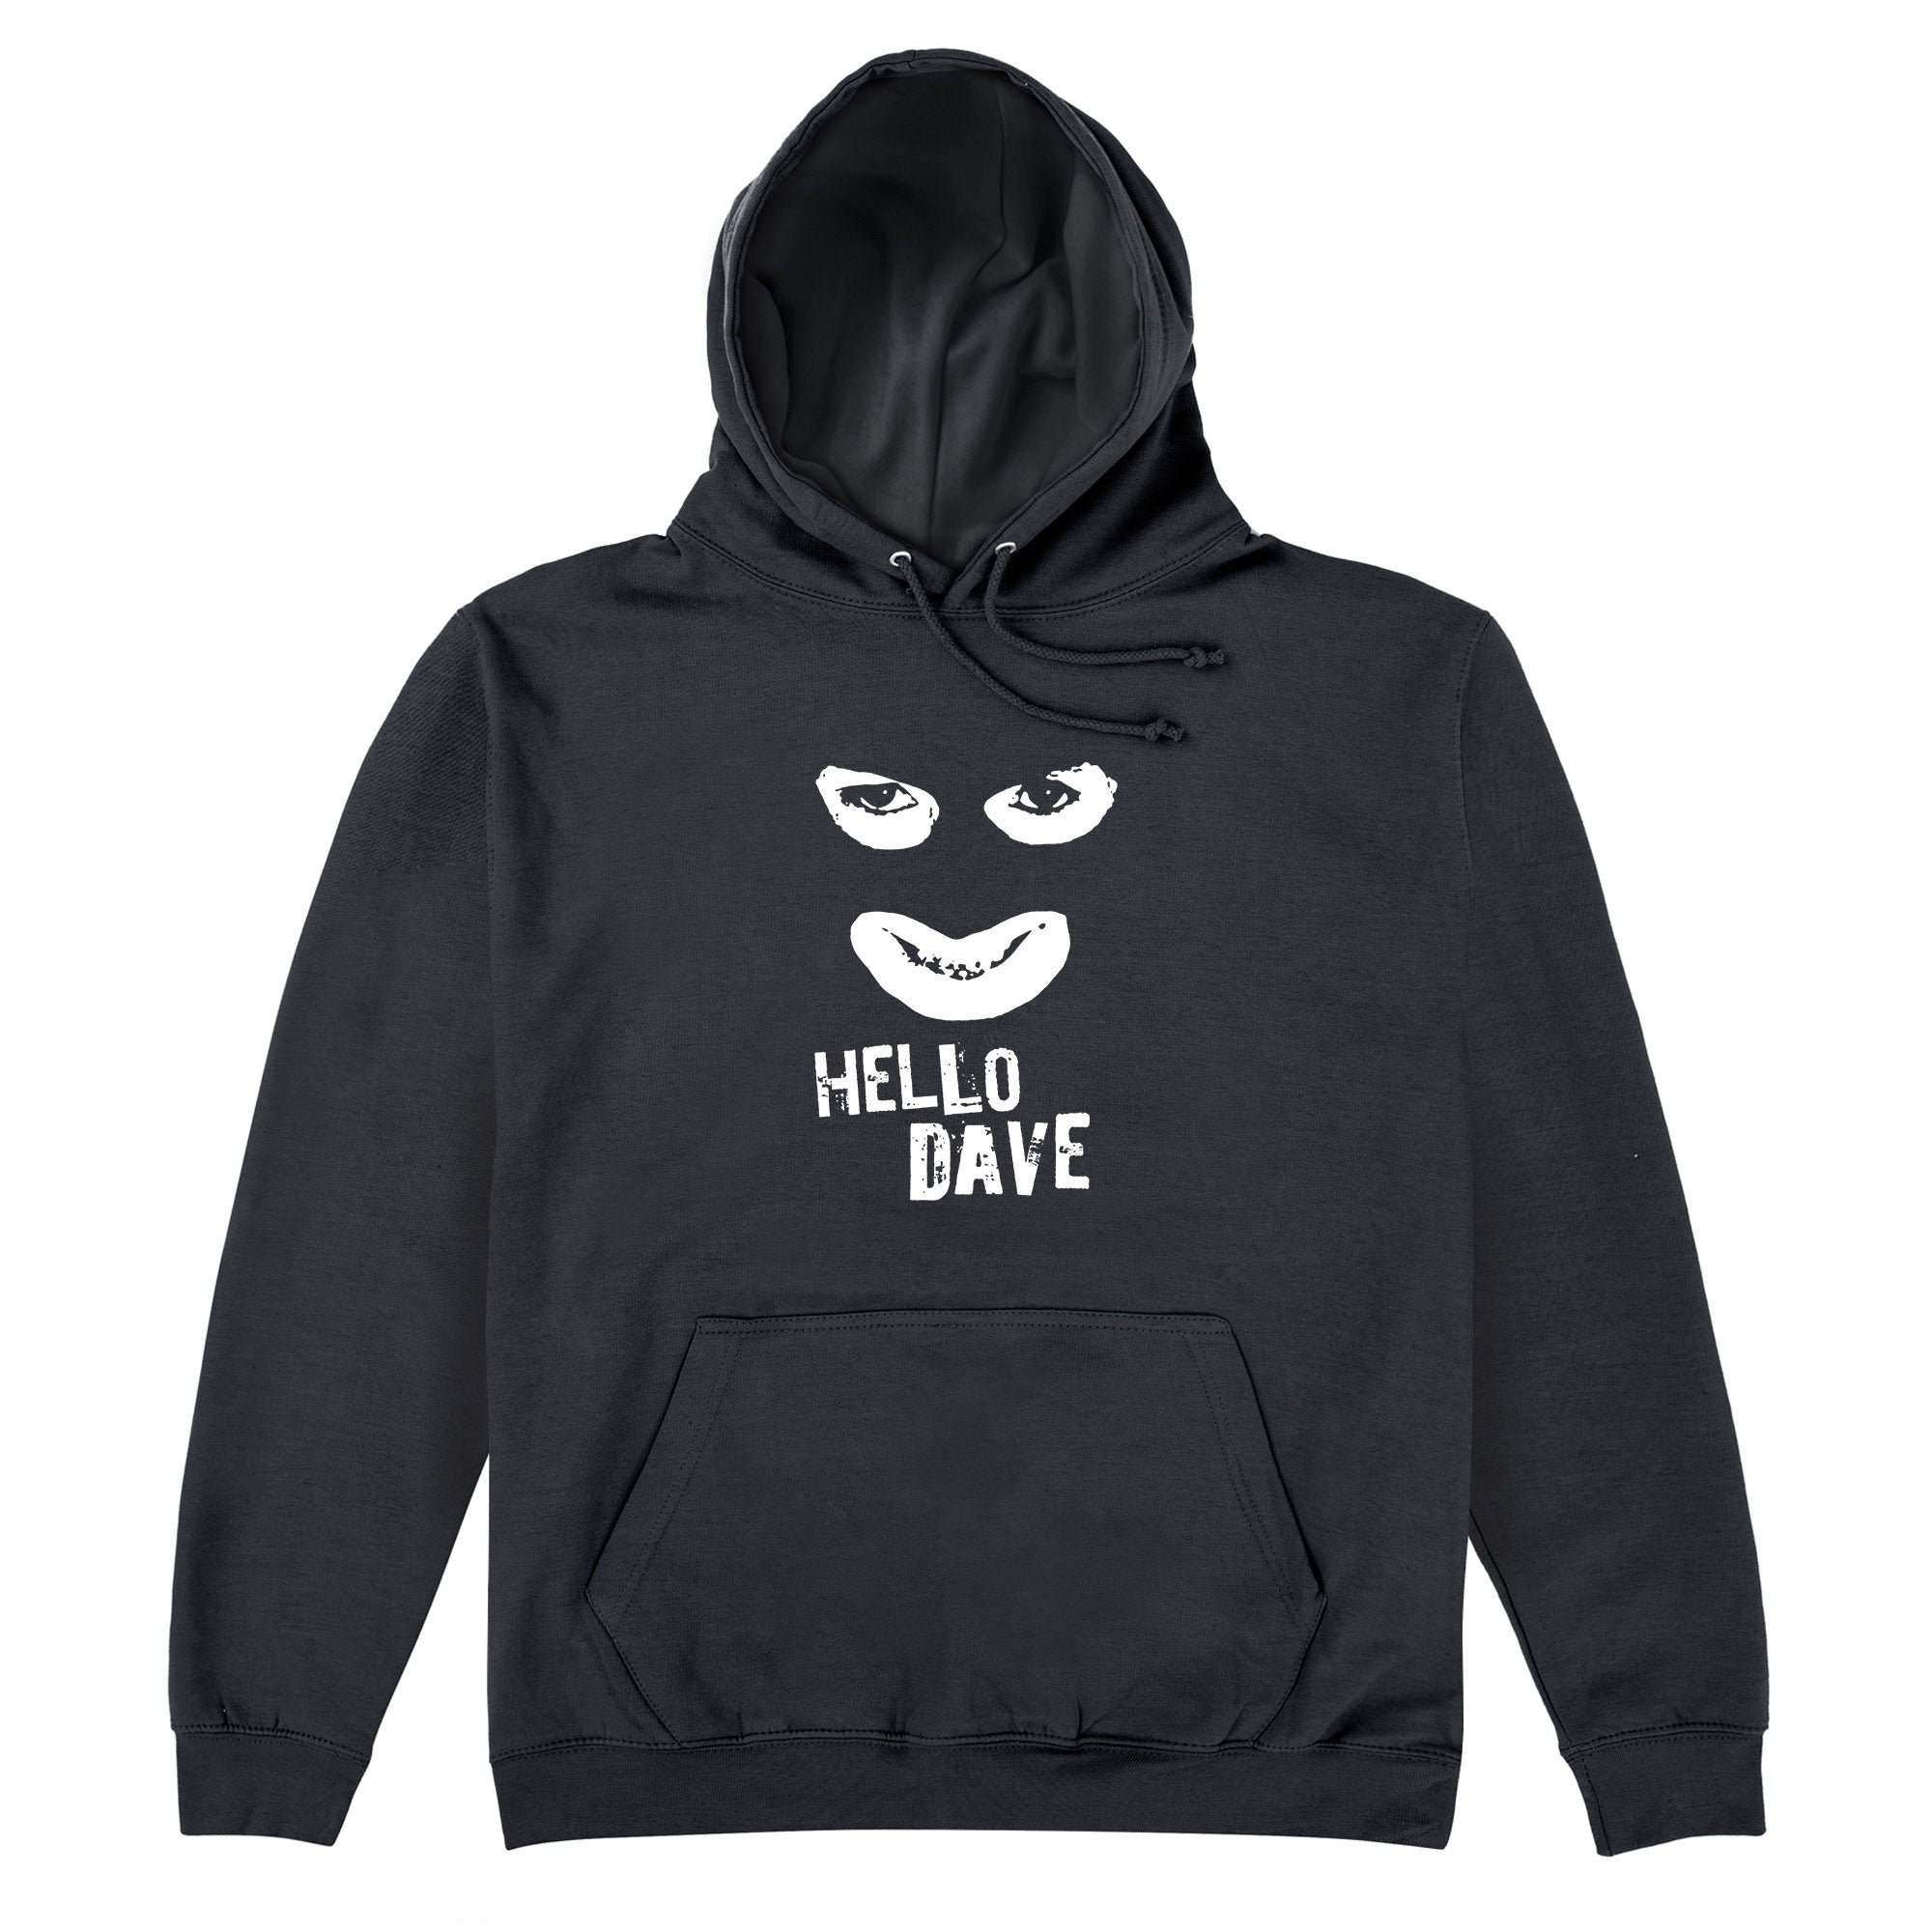 CHEAP Inspired By The League of Gentlemen – Papa Lazarou Hoodie 25735409447 – Clothing Accessories